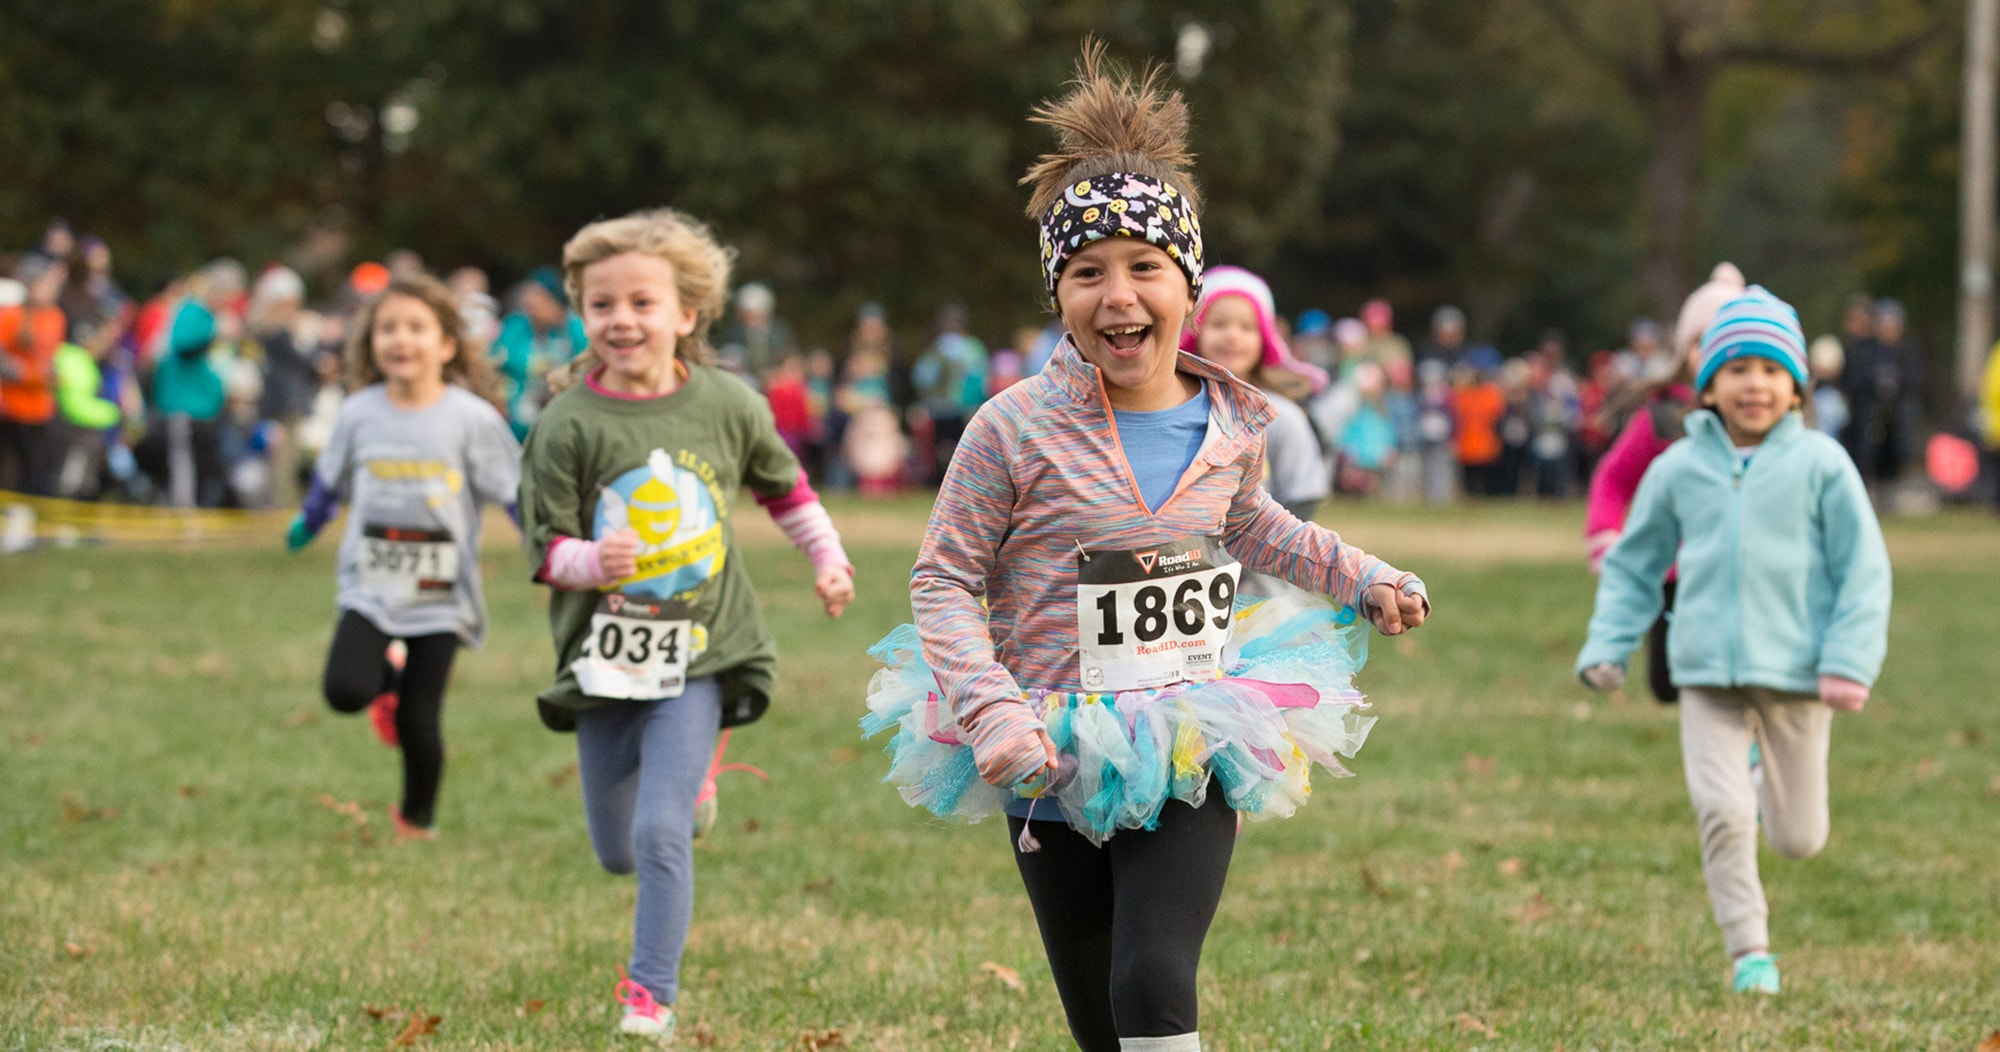 Kids running in an ALSF race